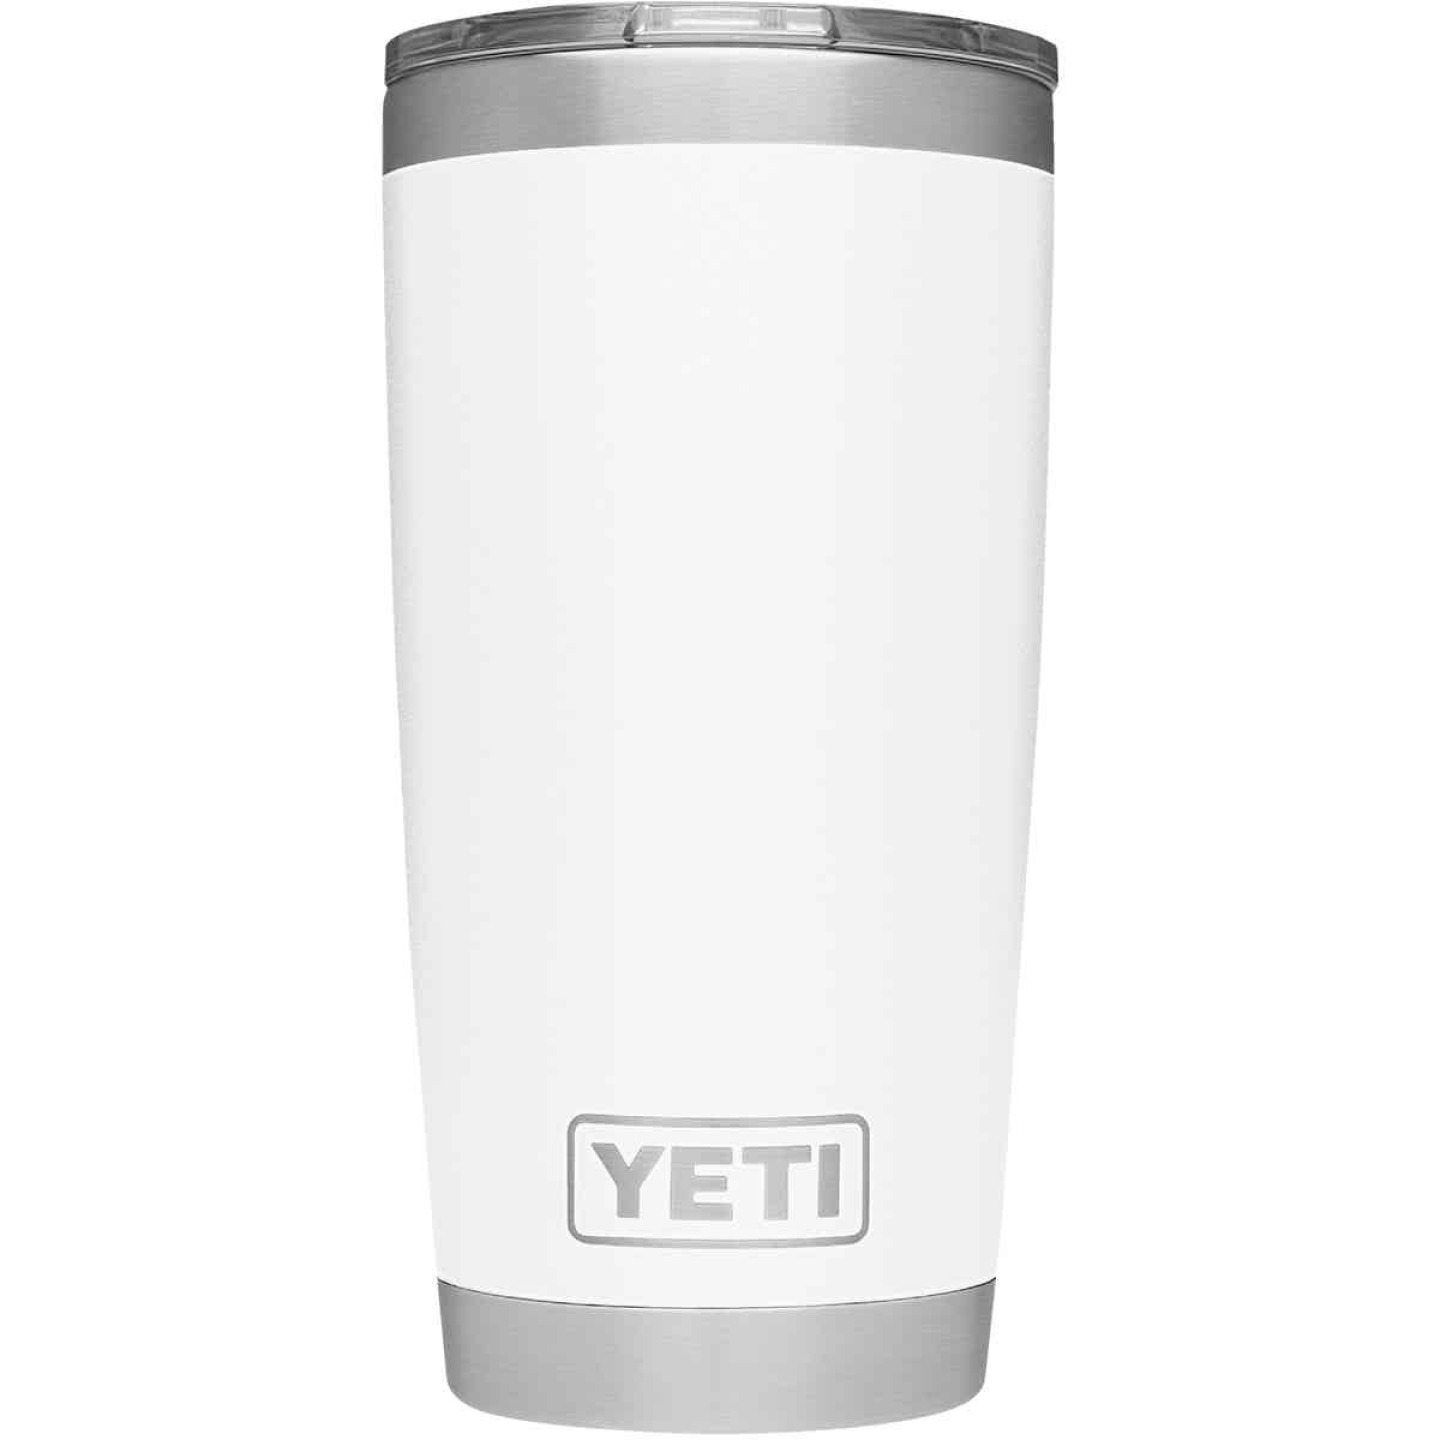 Yeti Rambler 20 Oz. White Stainless Steel Insulated Tumbler with MagSlider Lid Image 2